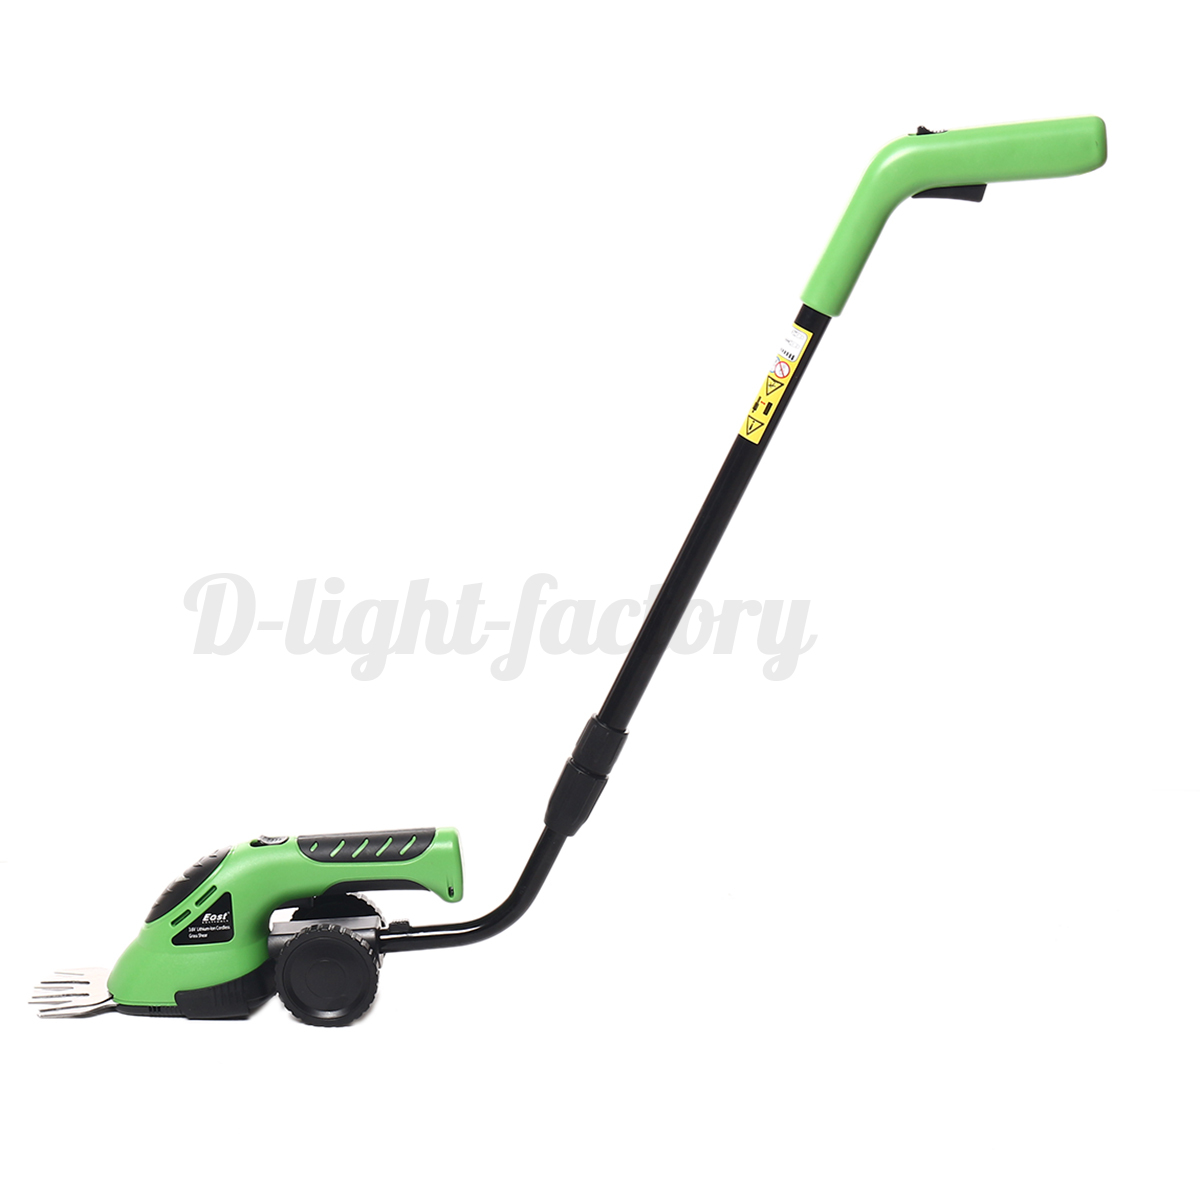 Cordless-Grass-Shear-Lawnmower-Garden-Pruning-Hedge-Trimmer-Rod-Wheel-Holder thumbnail 8